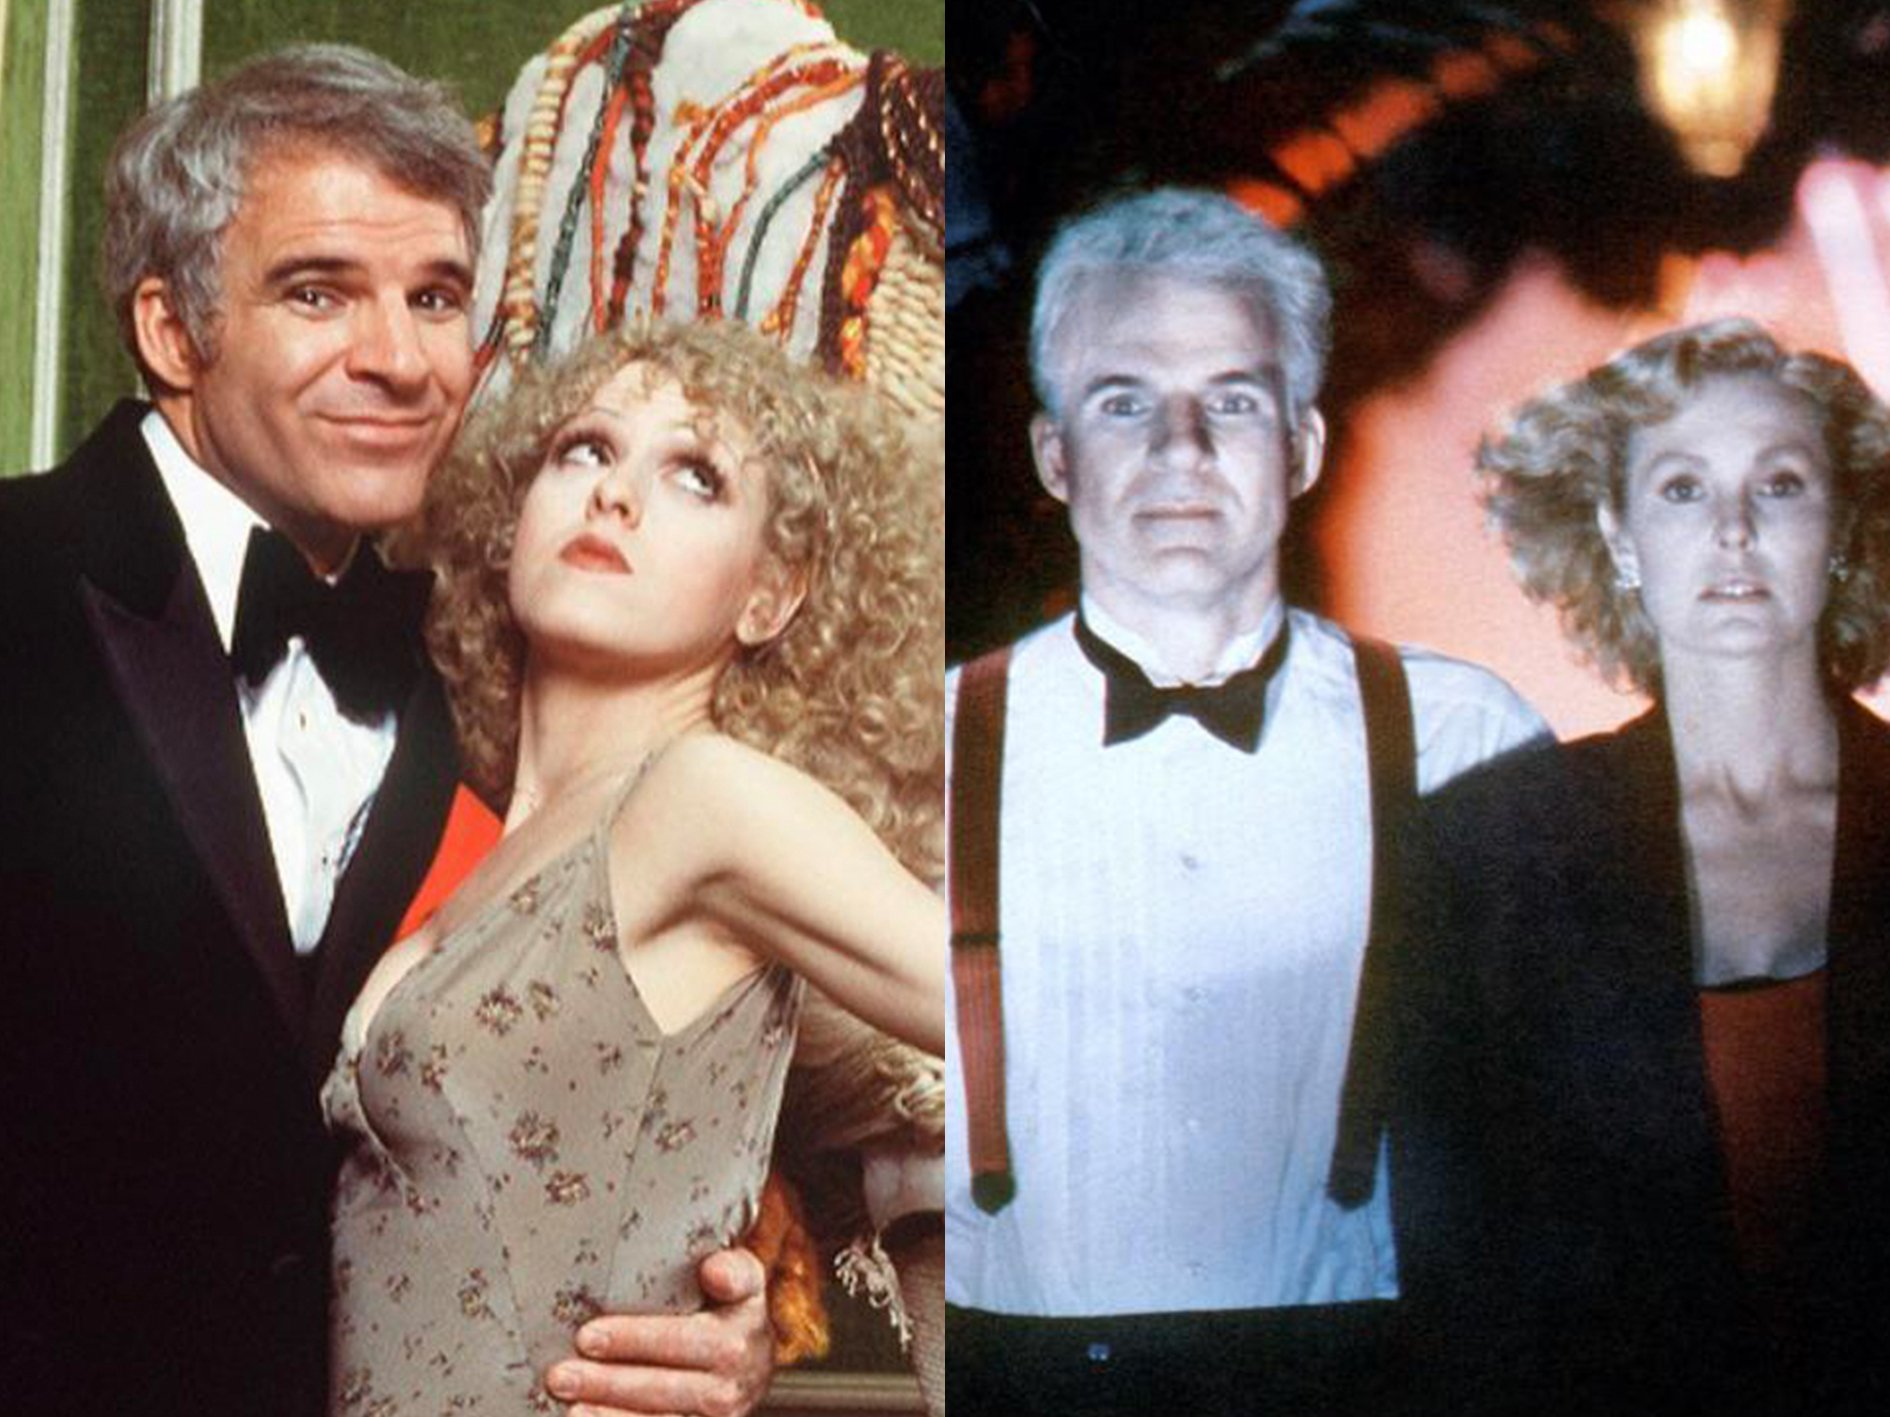 Steve Martin Bernadette Peters Victoria Tennant 20 Things You Didn't Know About Steve Martin